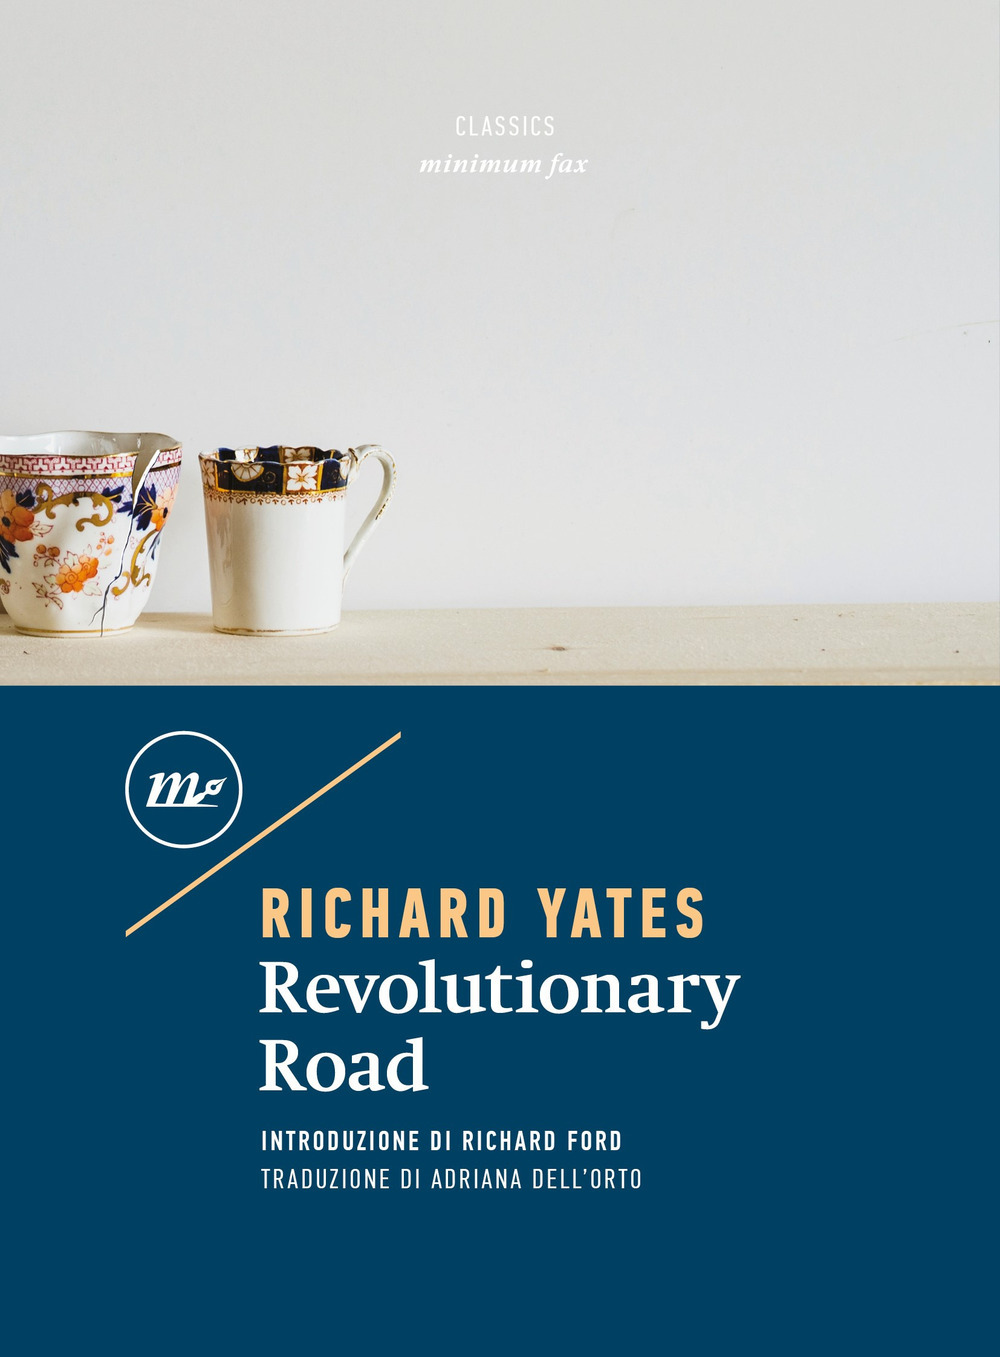 Richard Yates – Revolutionary Road